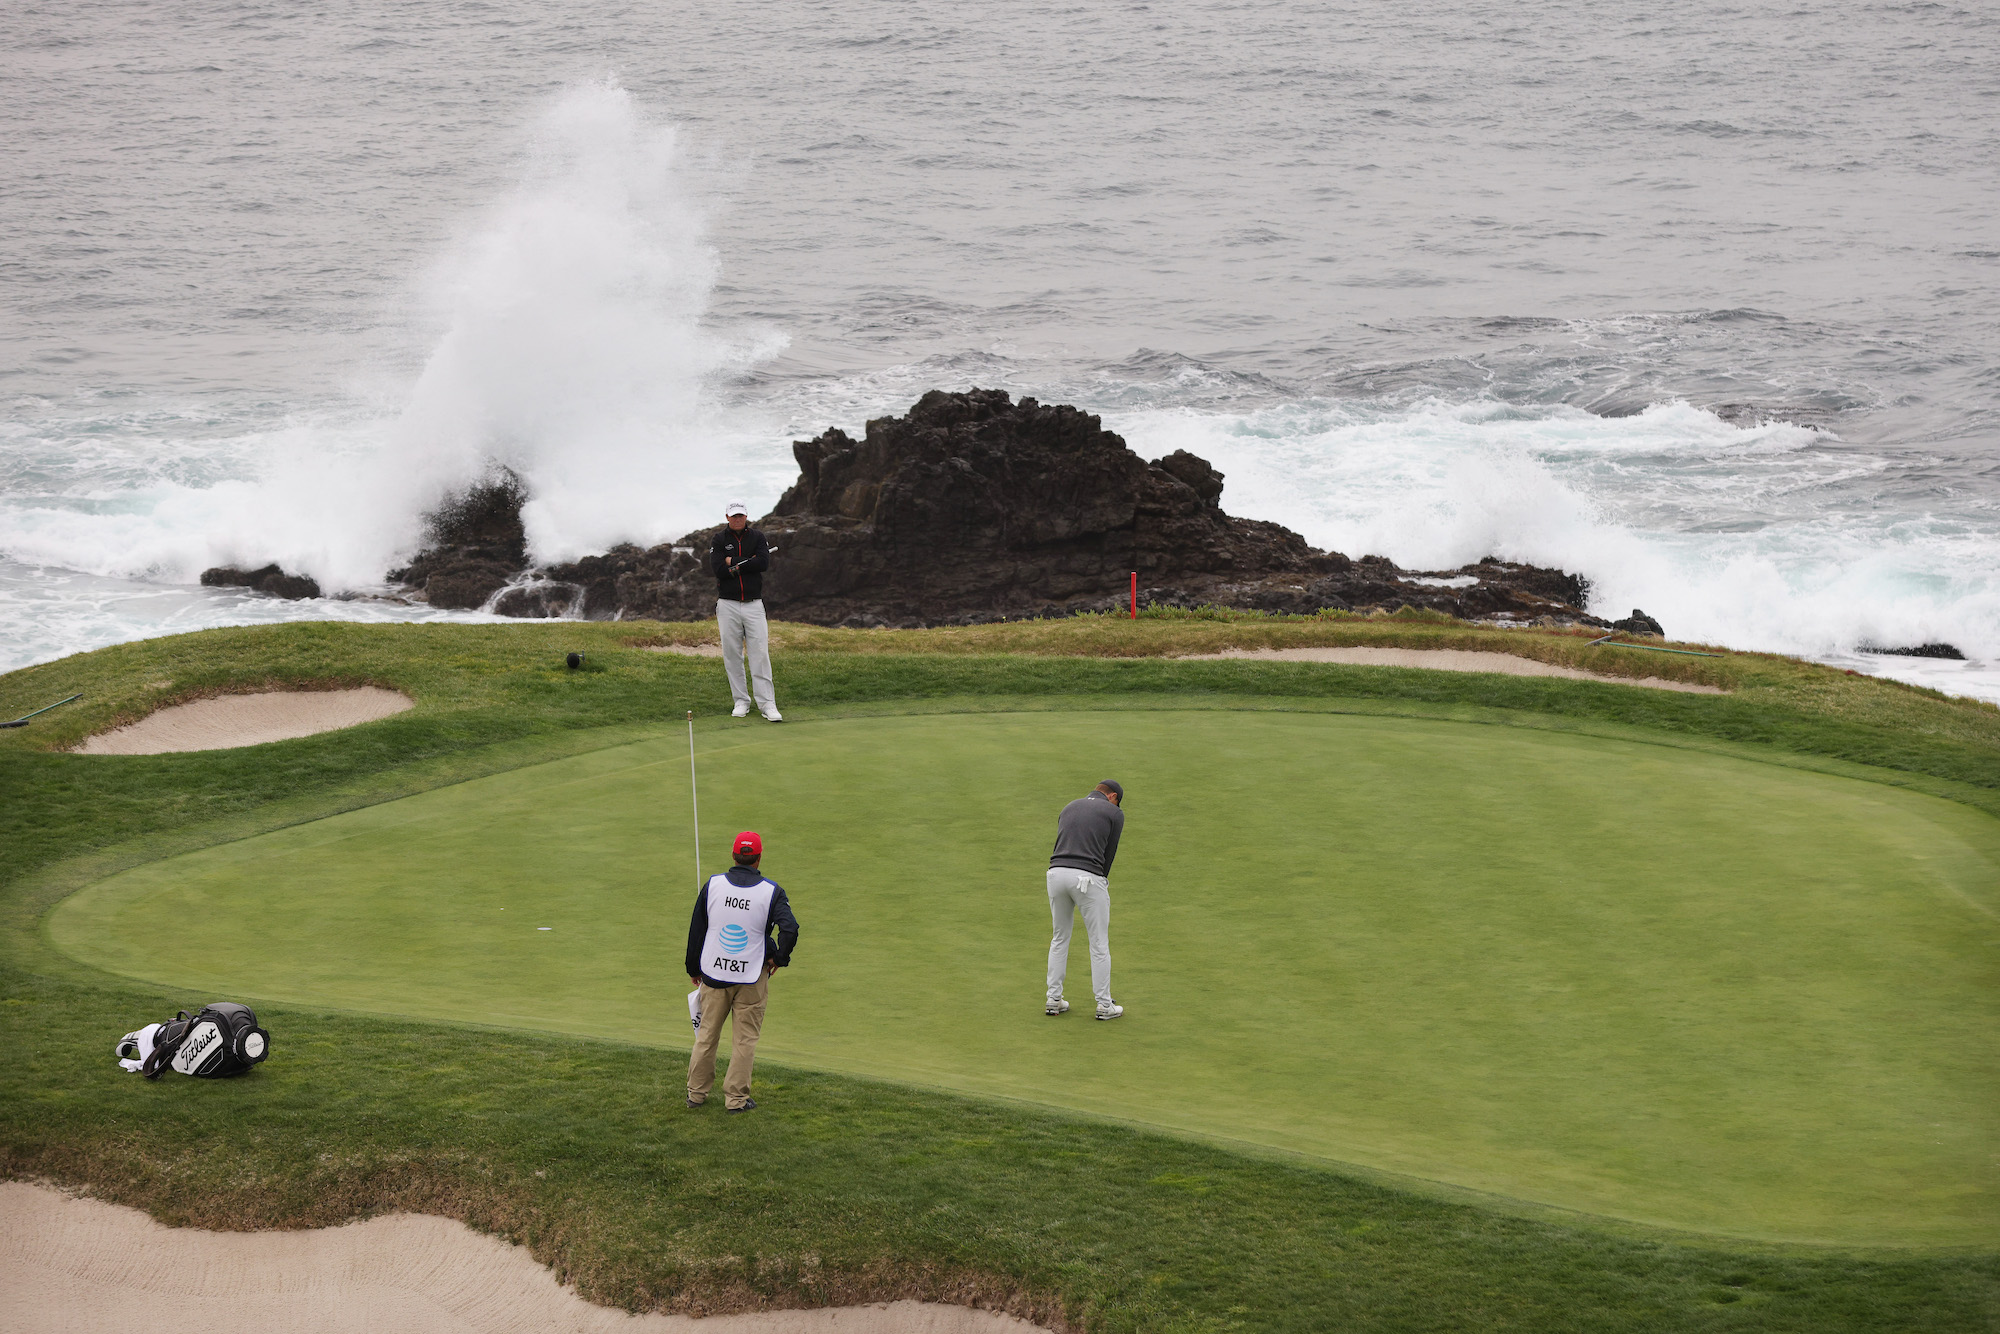 2021 AT&T Pebble Beach Pro-Am: Final Round - Jordan Putts on the Scenic No. 7